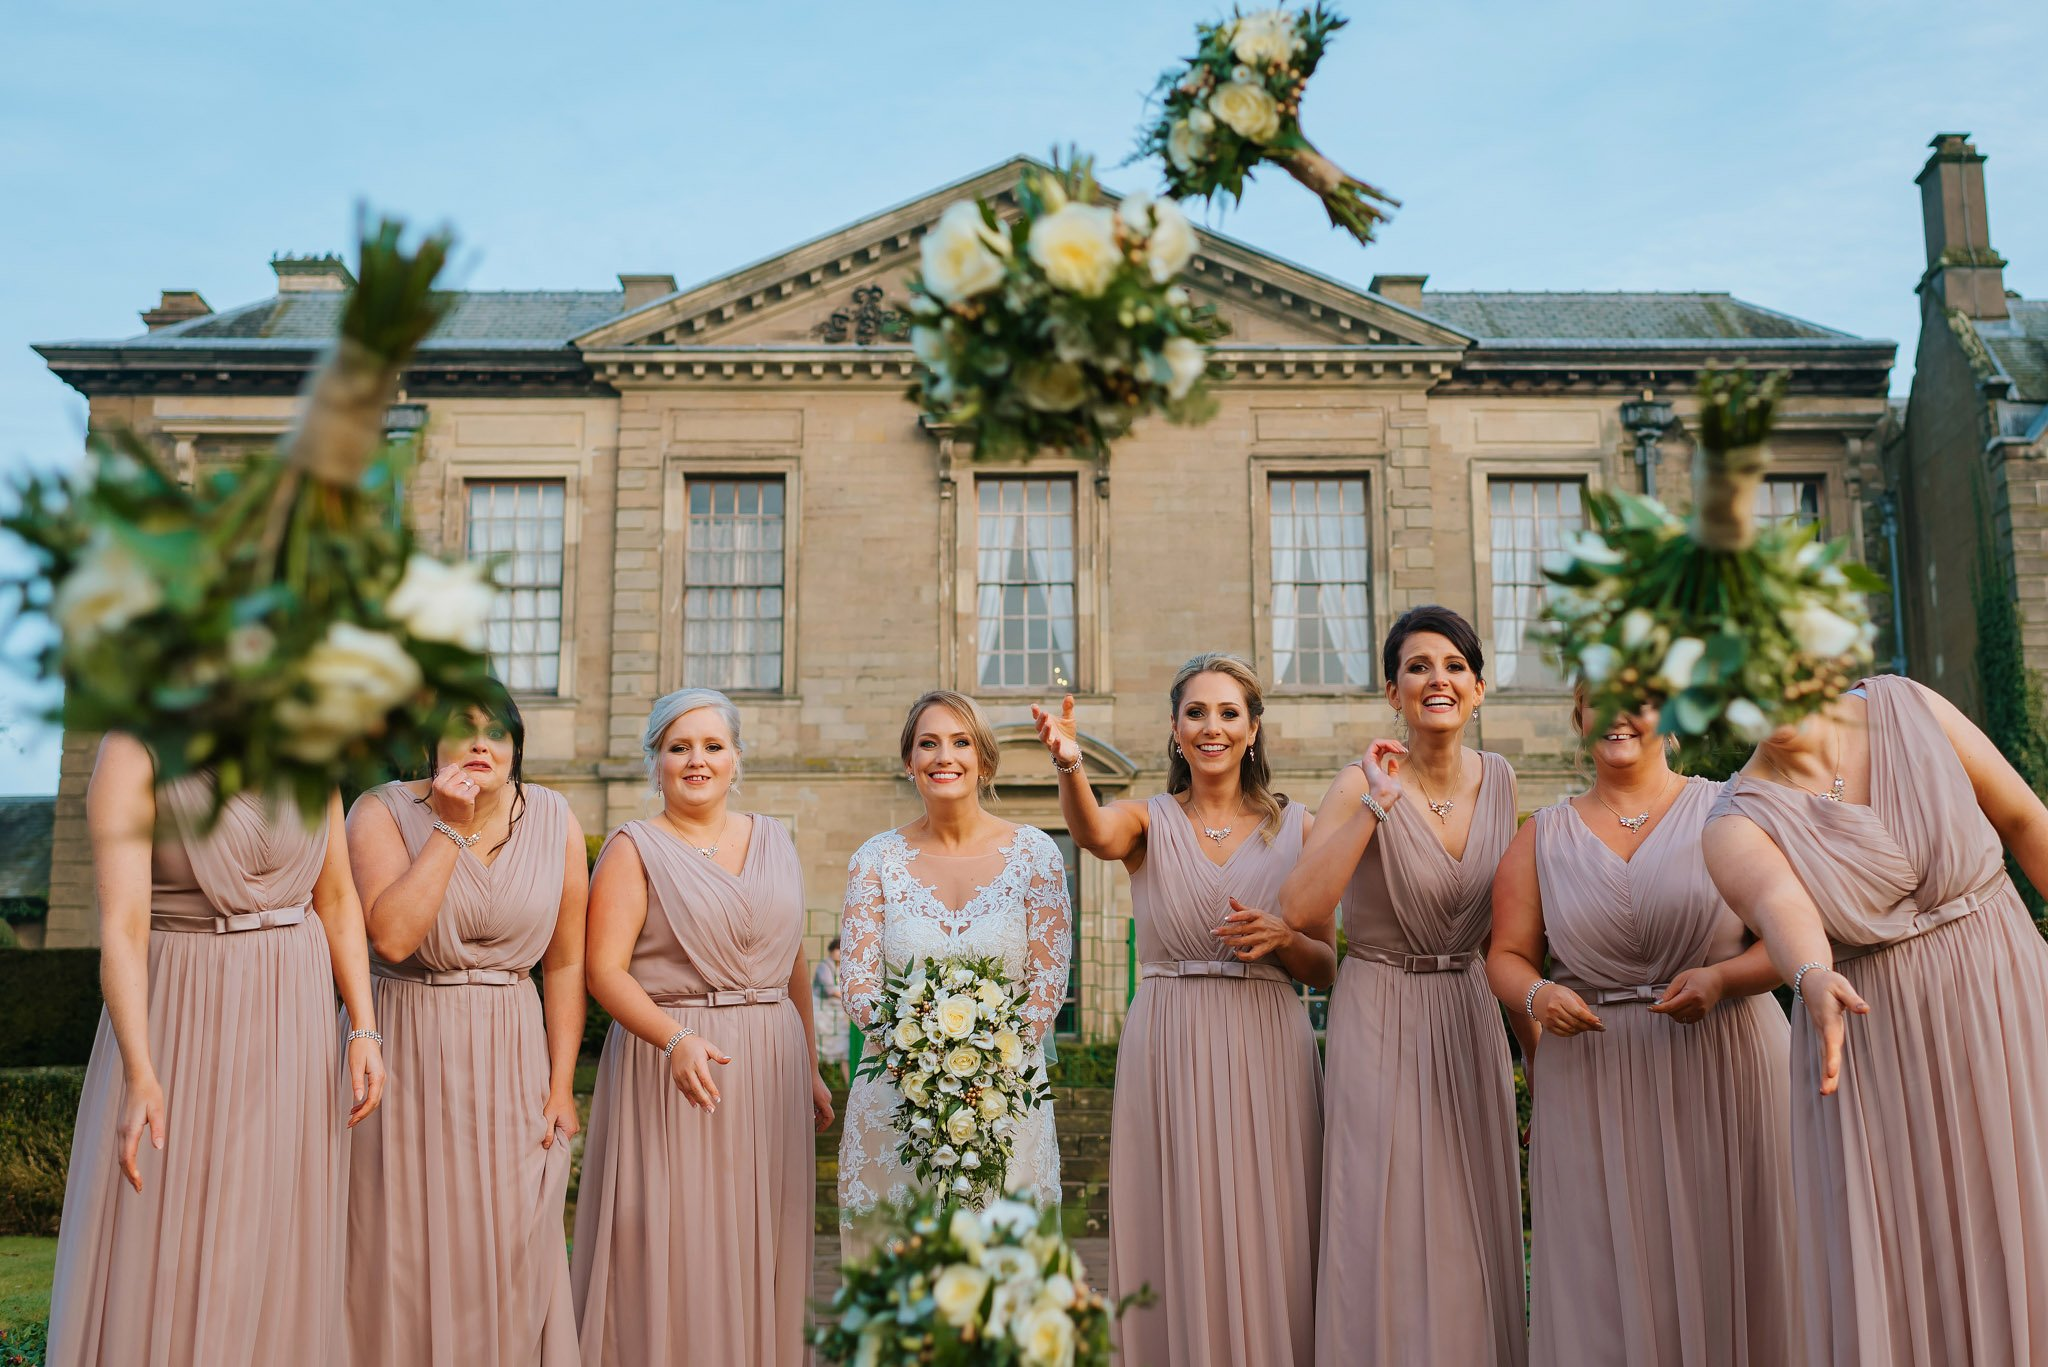 Coombe Abbey wedding in Coventry, Warwickshire - Sam + Matt 28